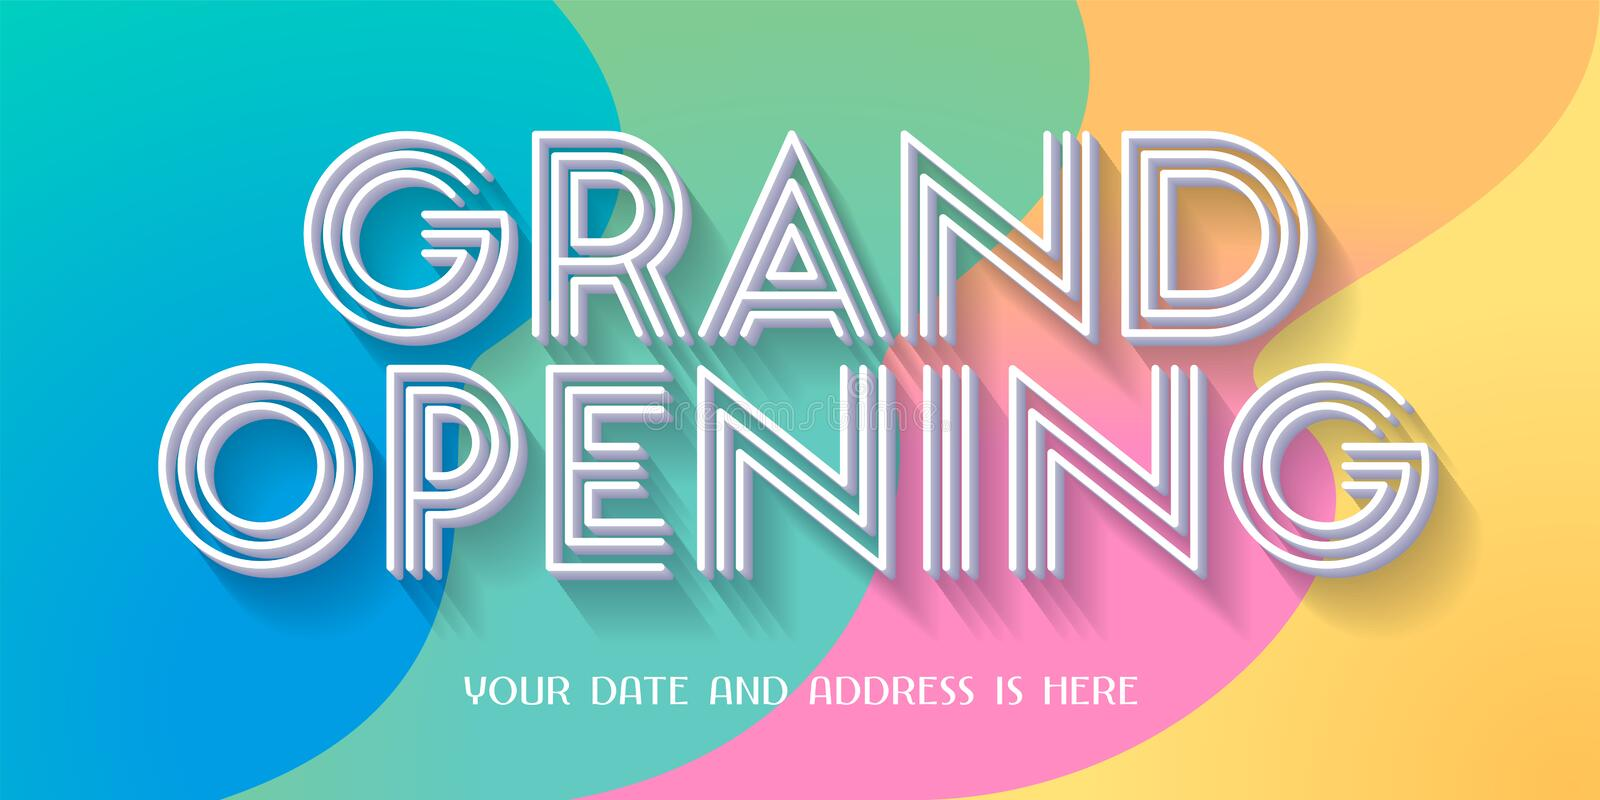 Grand opening vector illustration, banner. Grand opening vector illustration, background with retro style colors design. Template banner for opening event vector illustration